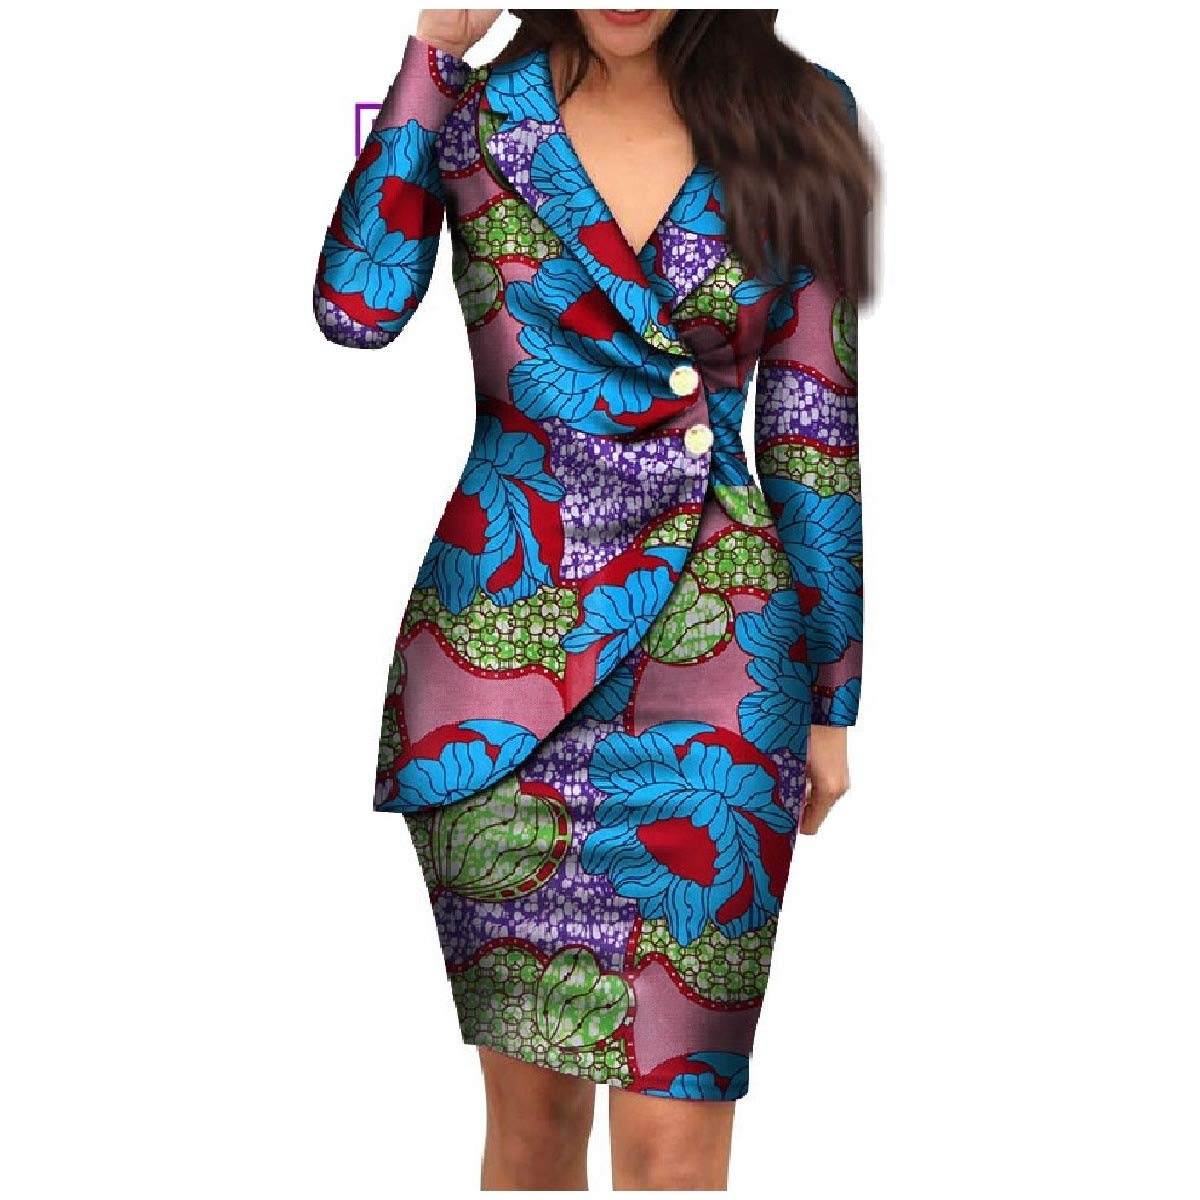 bluee Coolhere Women's African Style Dashiki PlusSize Basic Cotton Classy Dress